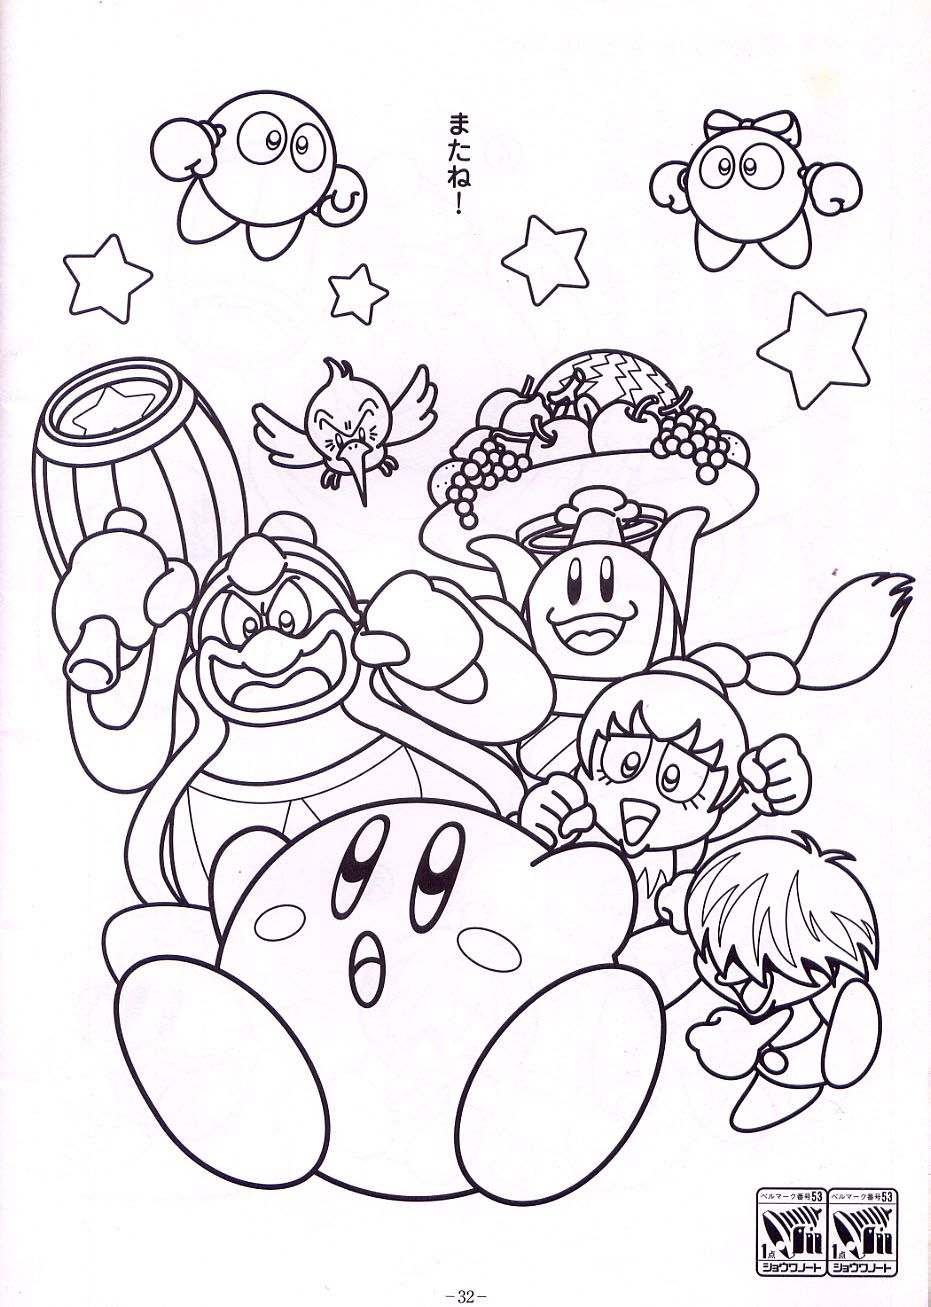 Kirby Coloring Page Monster Coloring Pages Mario Coloring Pages